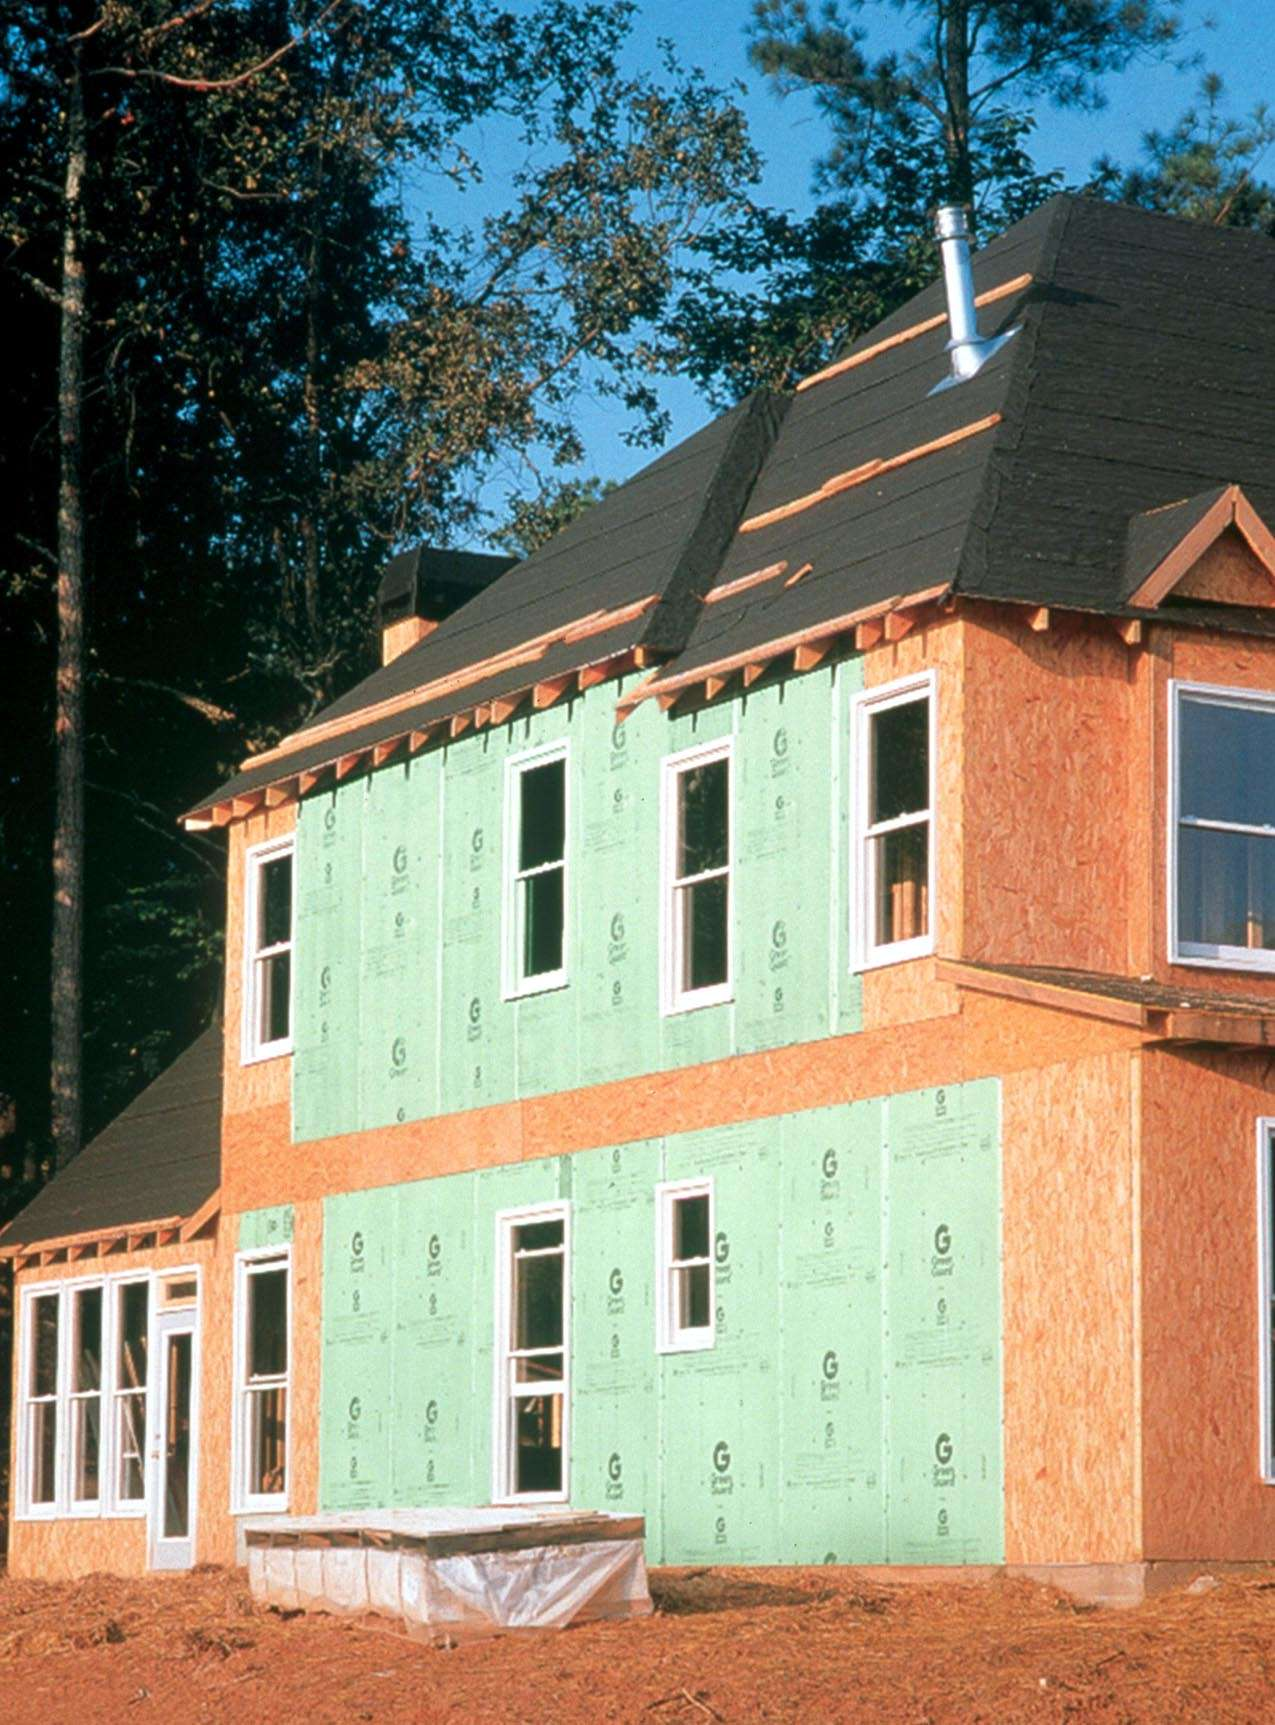 Greenguard Plygood Ultra Sheathing Provides Superior Thermal And Moisture Performance